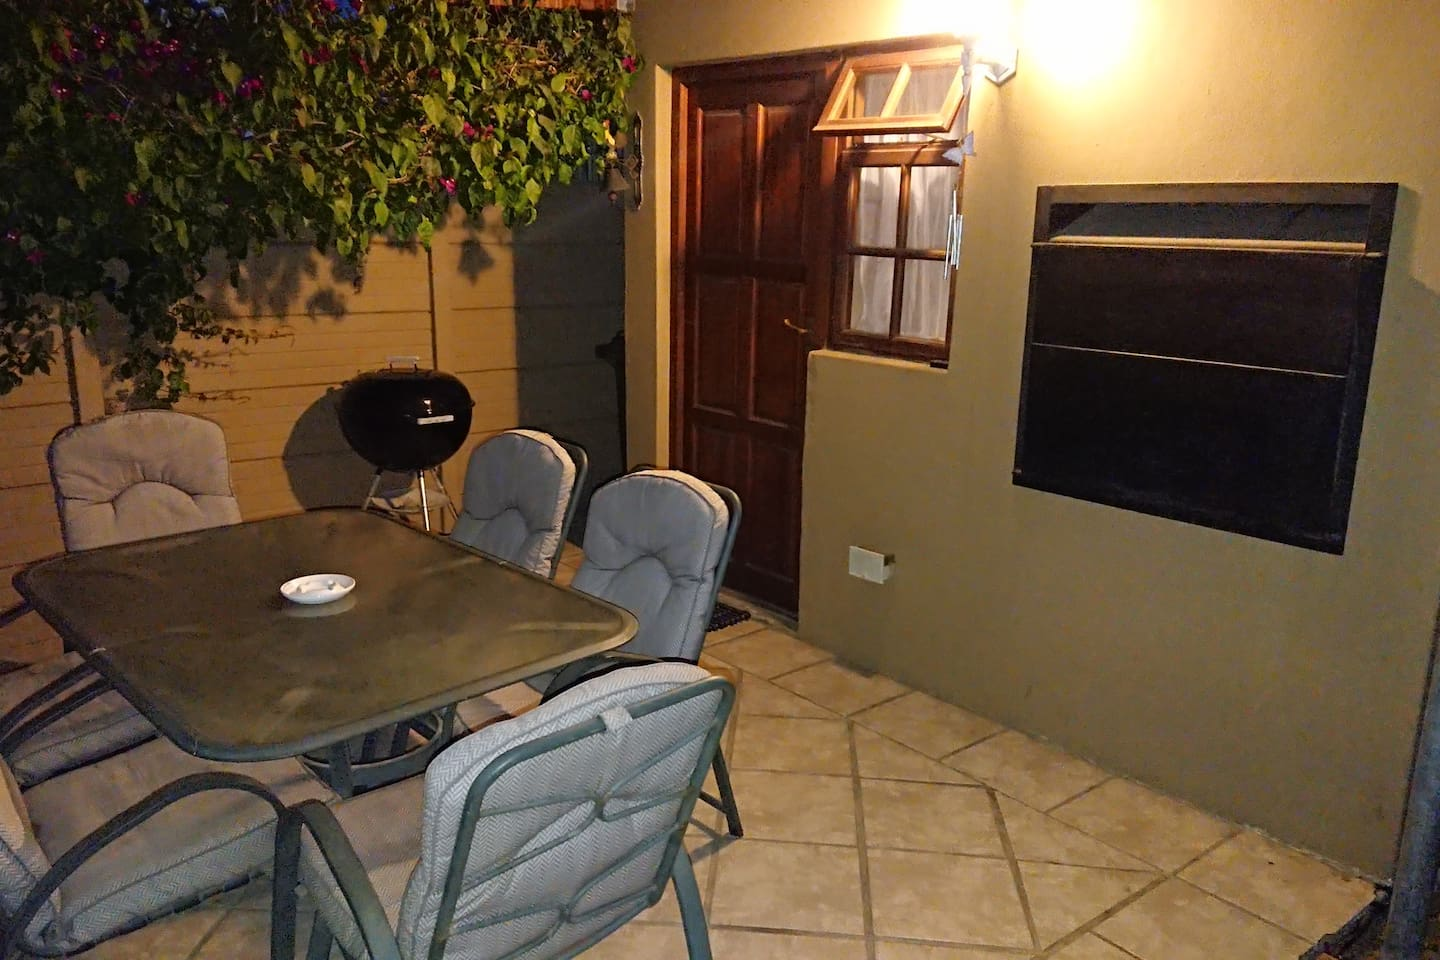 Outdoor seating area with built in braai